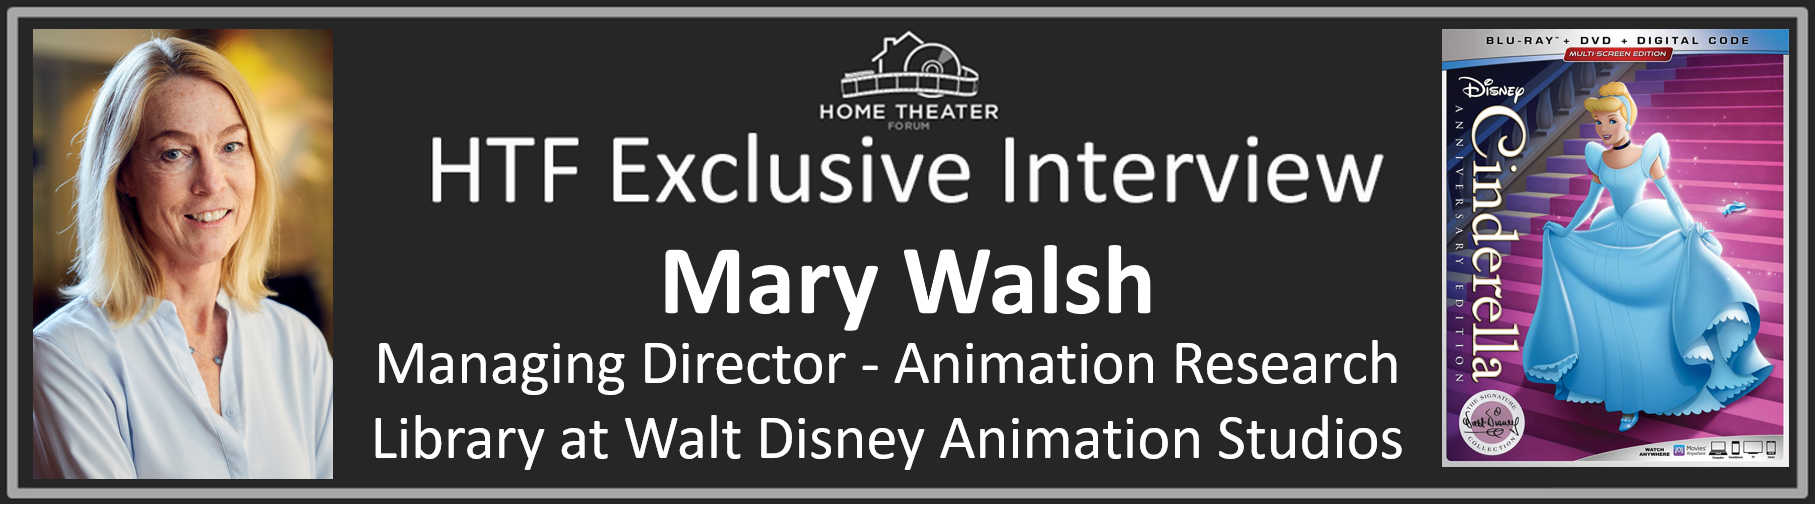 HTF_Interview_Mary_Walsh.png